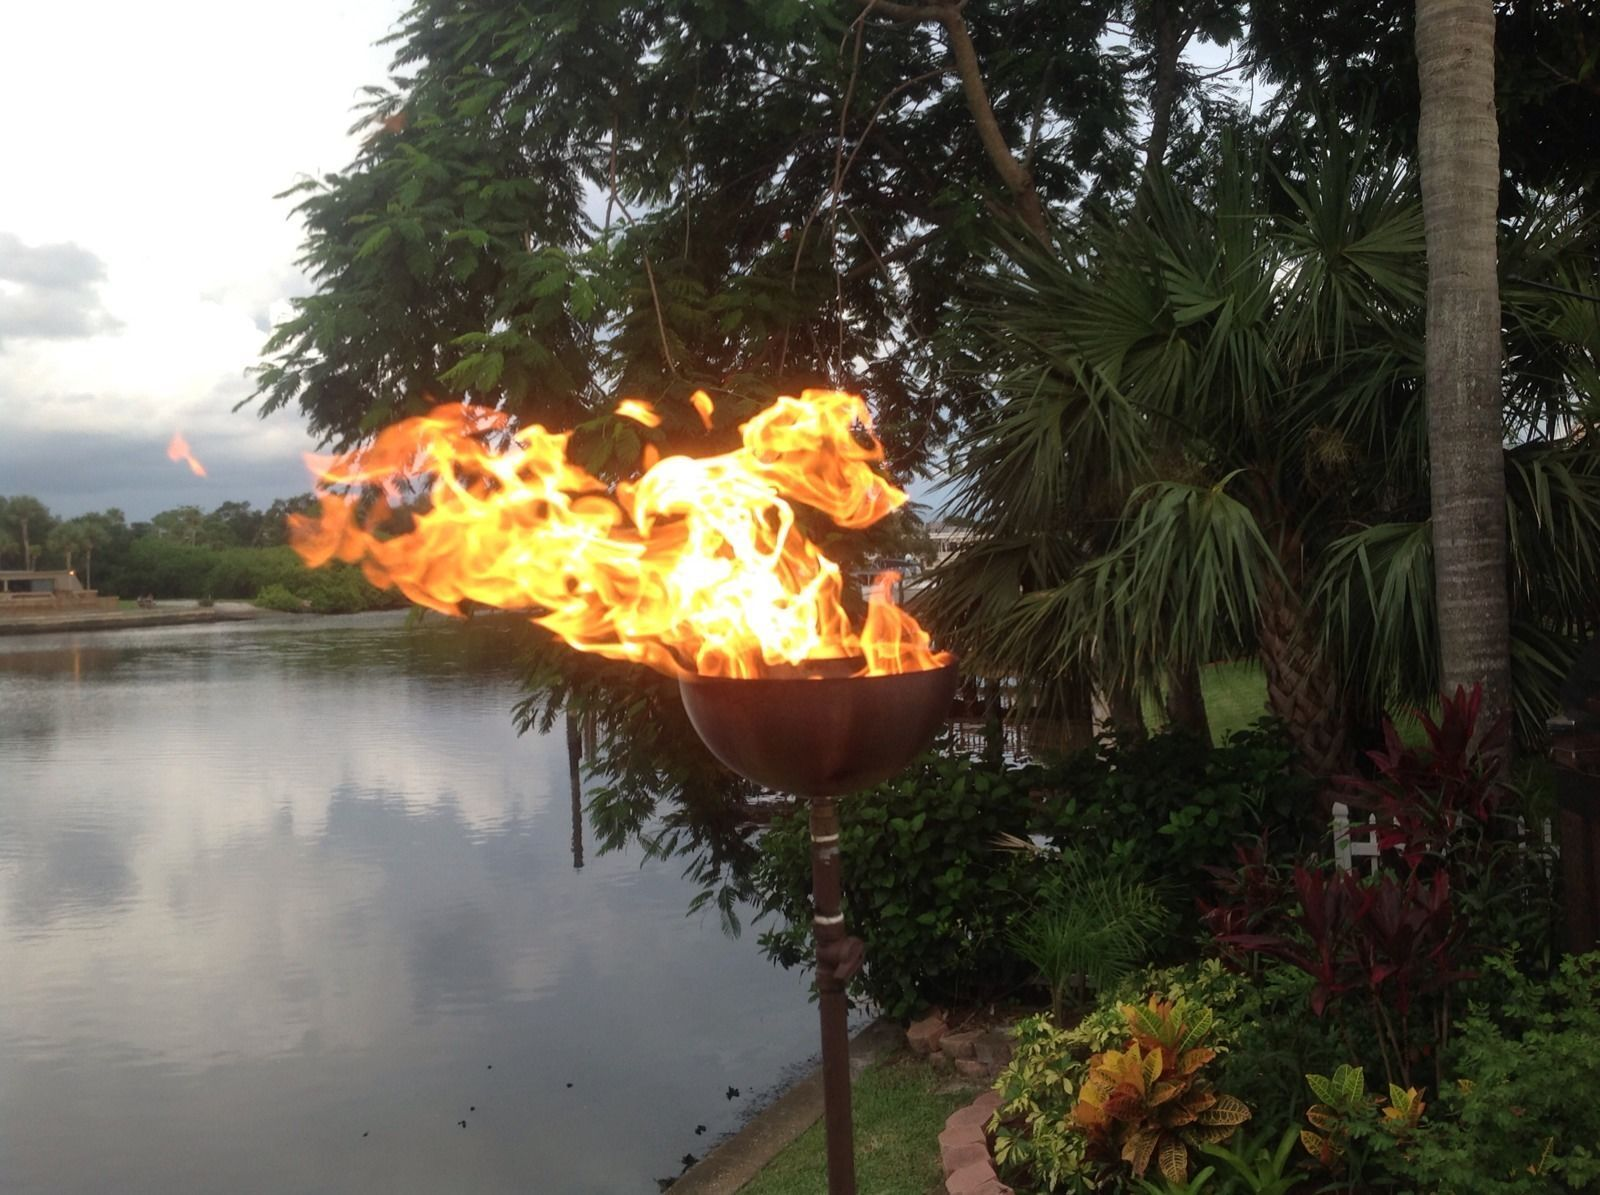 gather materials needed to make a propane tiki torch